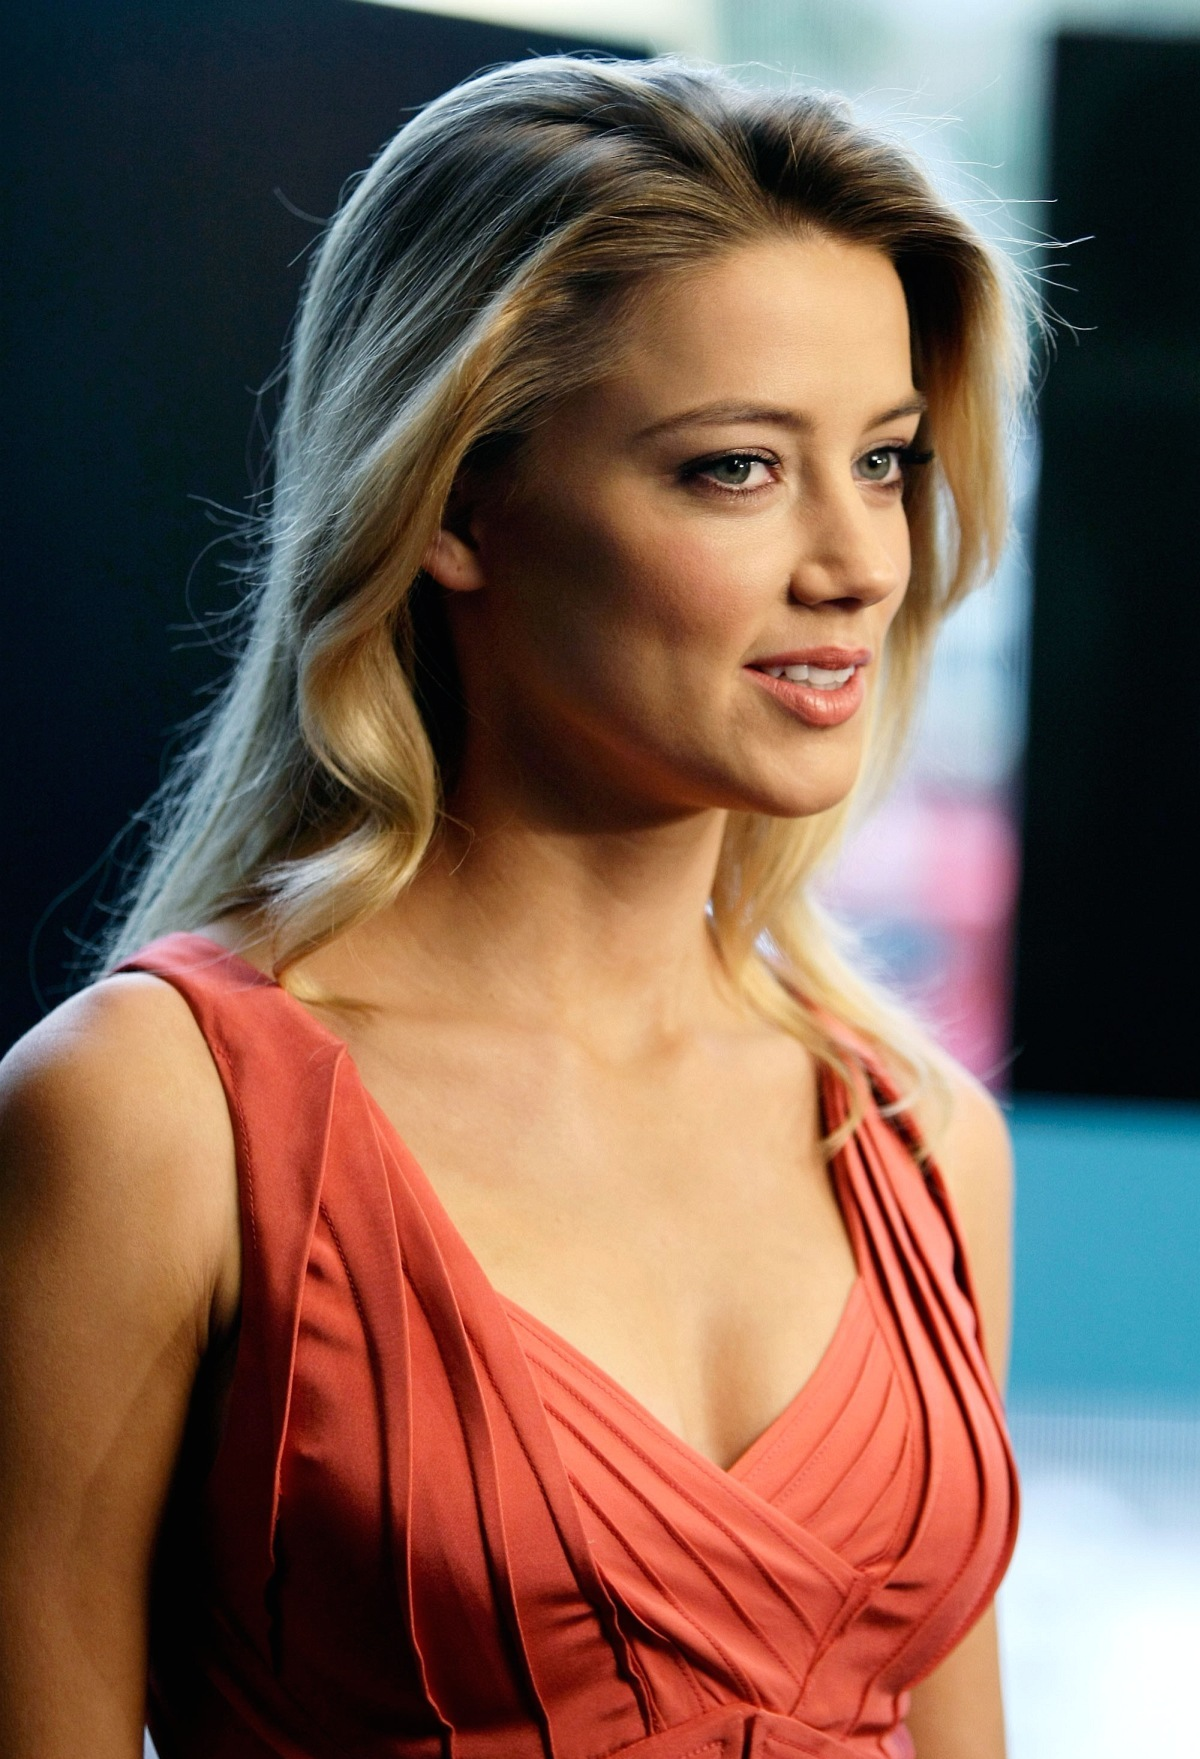 Amber heard and gallery Amber Heard Photo Gallery and Forum - m